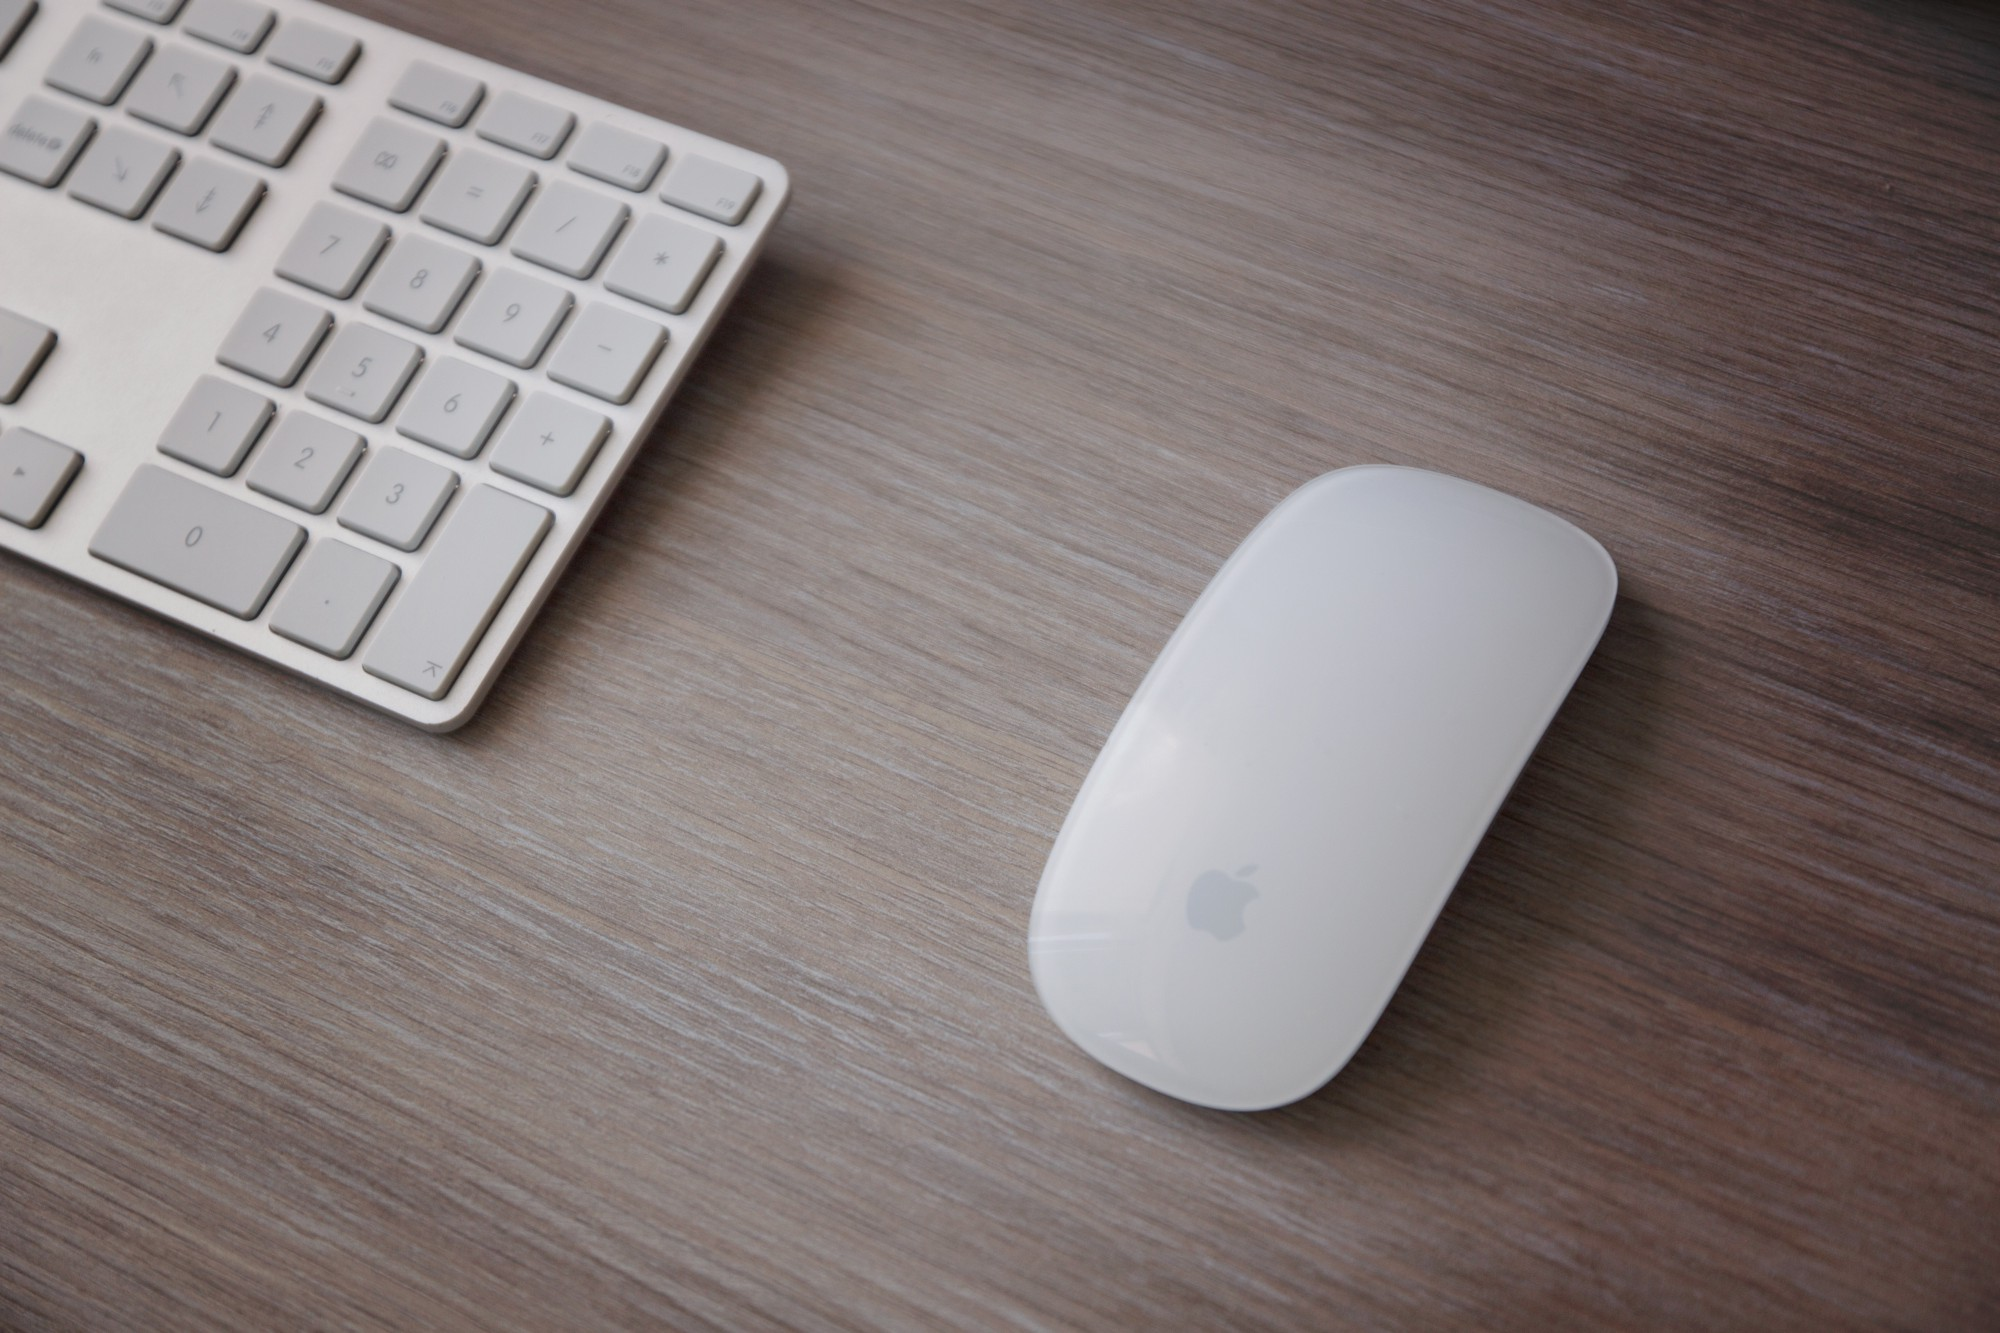 A mouse and keyboard on a wooden table